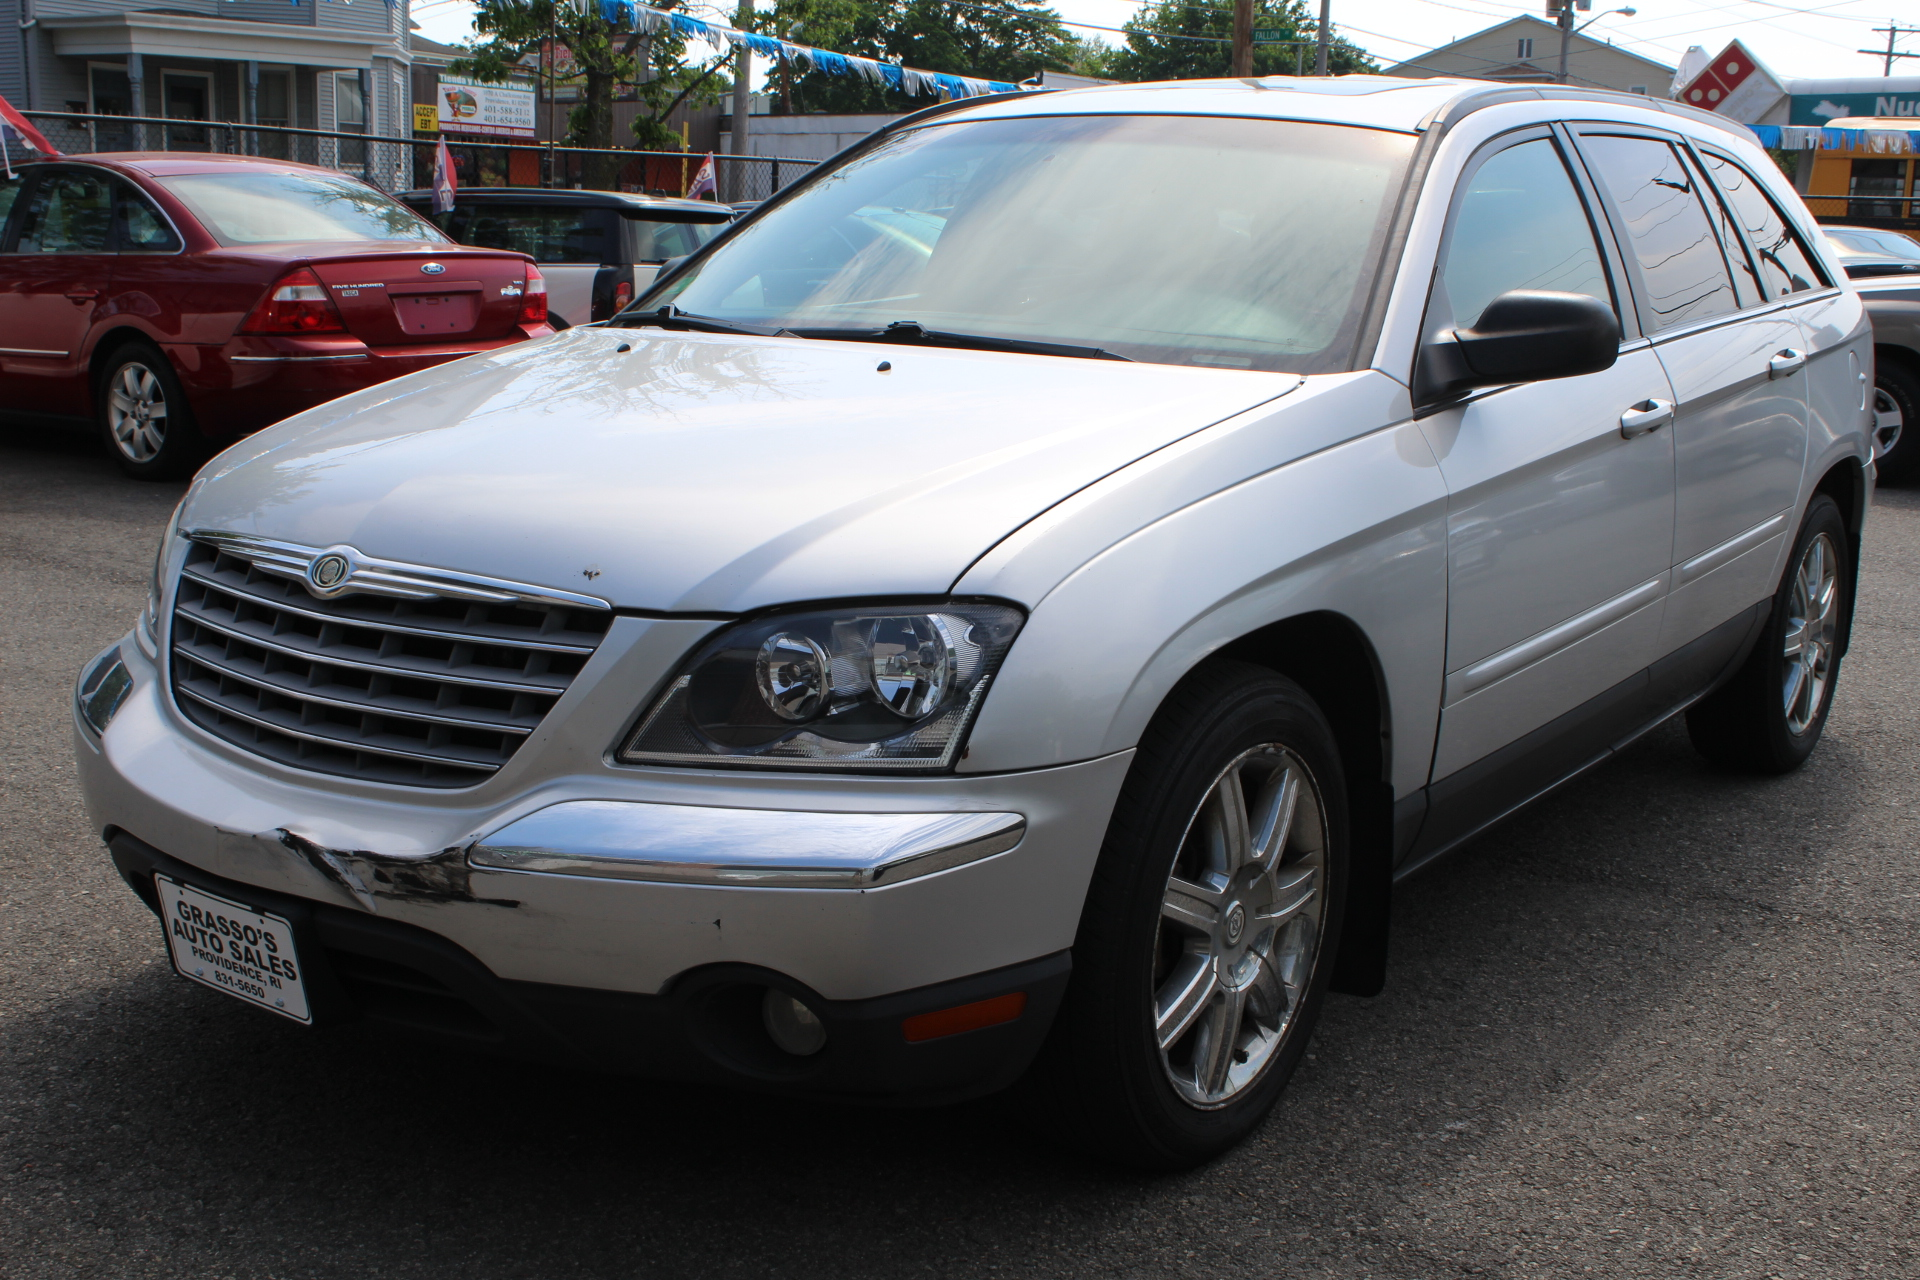 2005 Chrysler Pacifica 4dr Wgn Touring AWD NON SMOKER  COMPLETELY SERVICED WITH A 2 YEAR RHODE IS